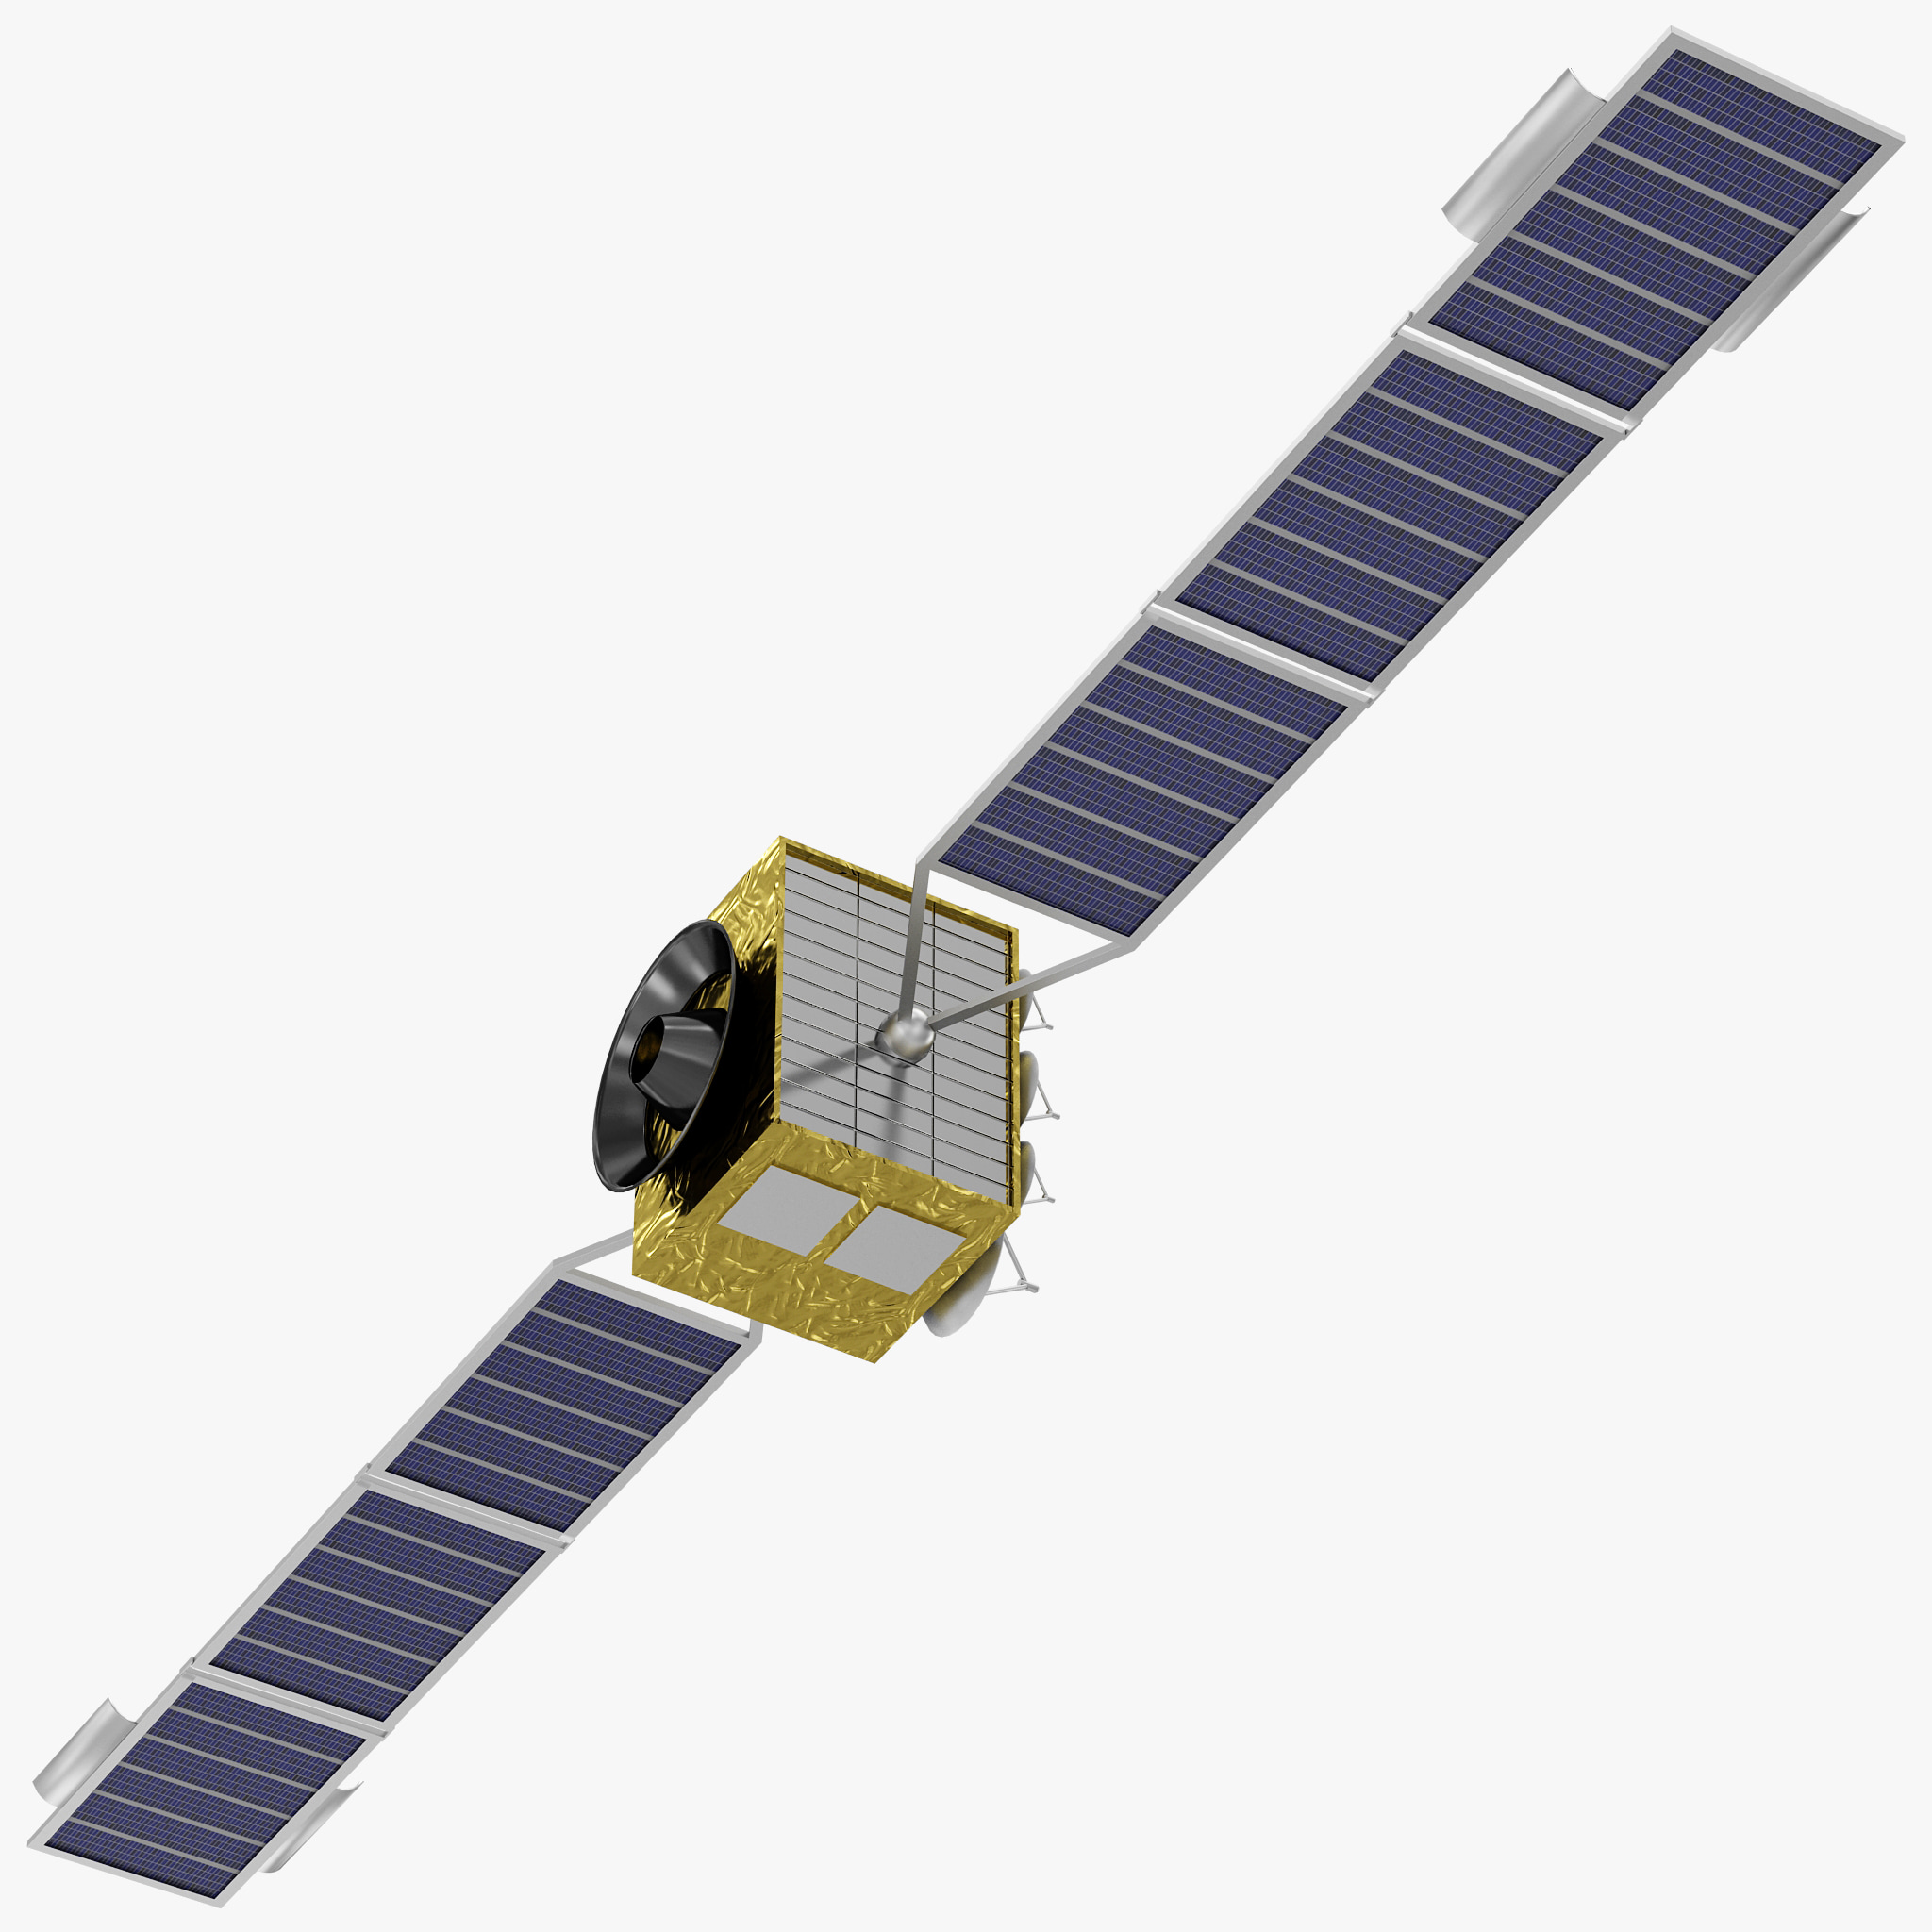 Communications Satellite EKS_1.jpg